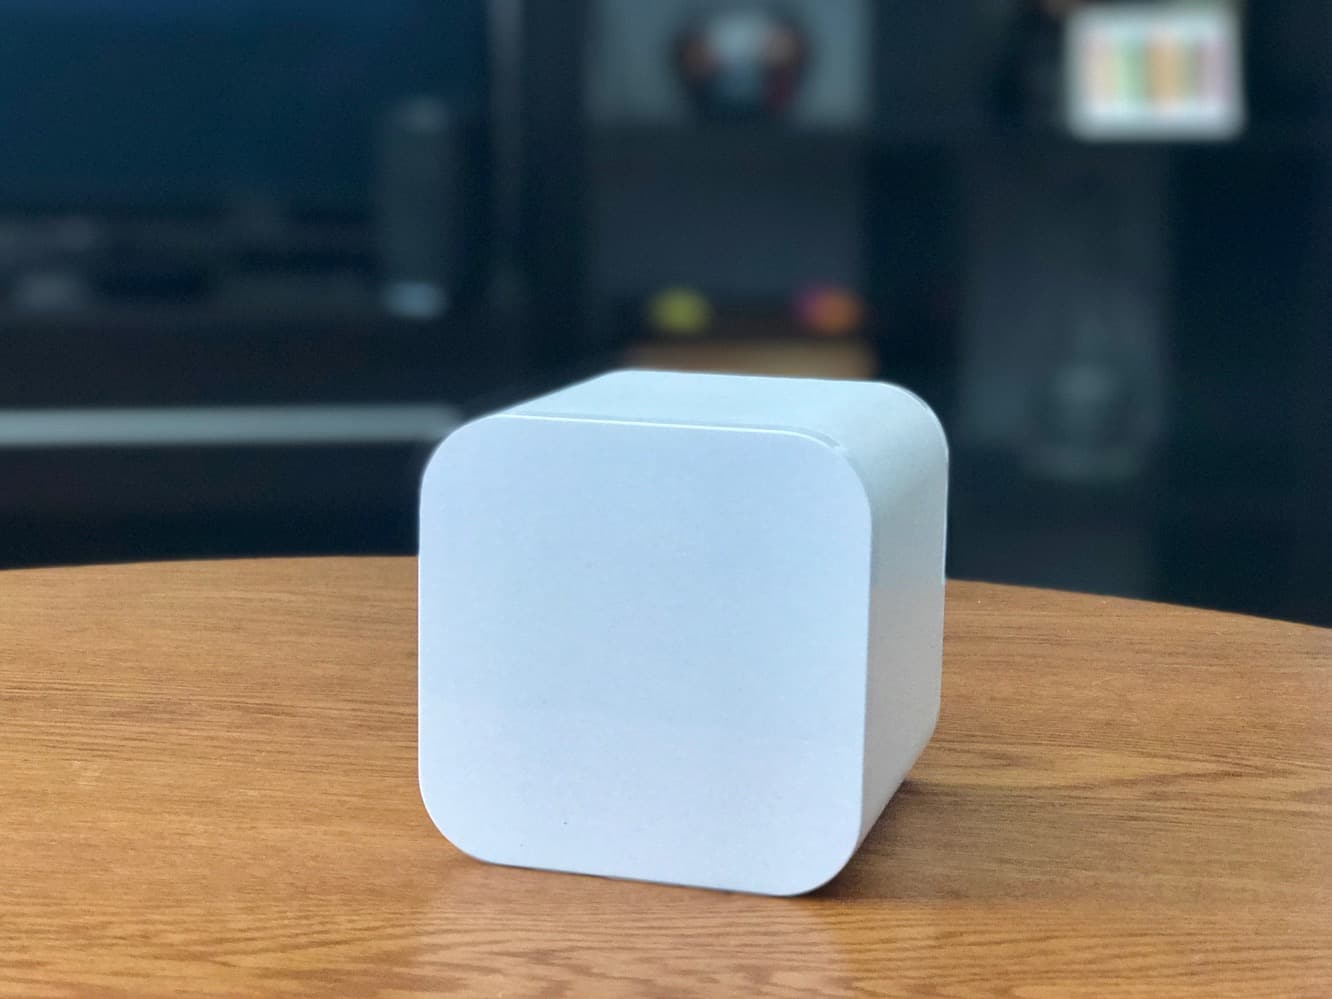 Review: Circle with Disney Parental Control and Internet Filtering System